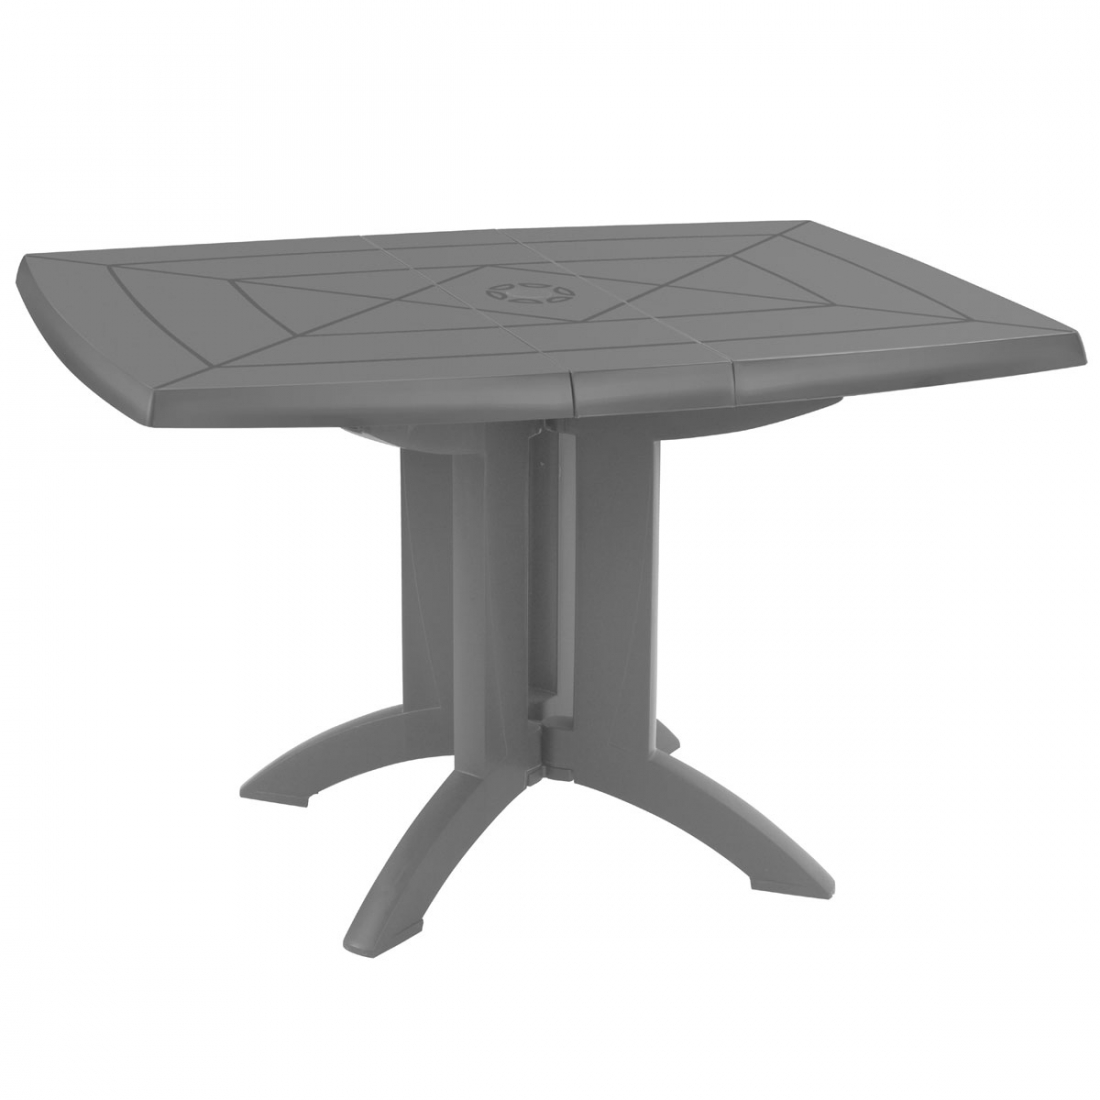 Table de jardin pliante vega grosfillex - Table de jardin design ...